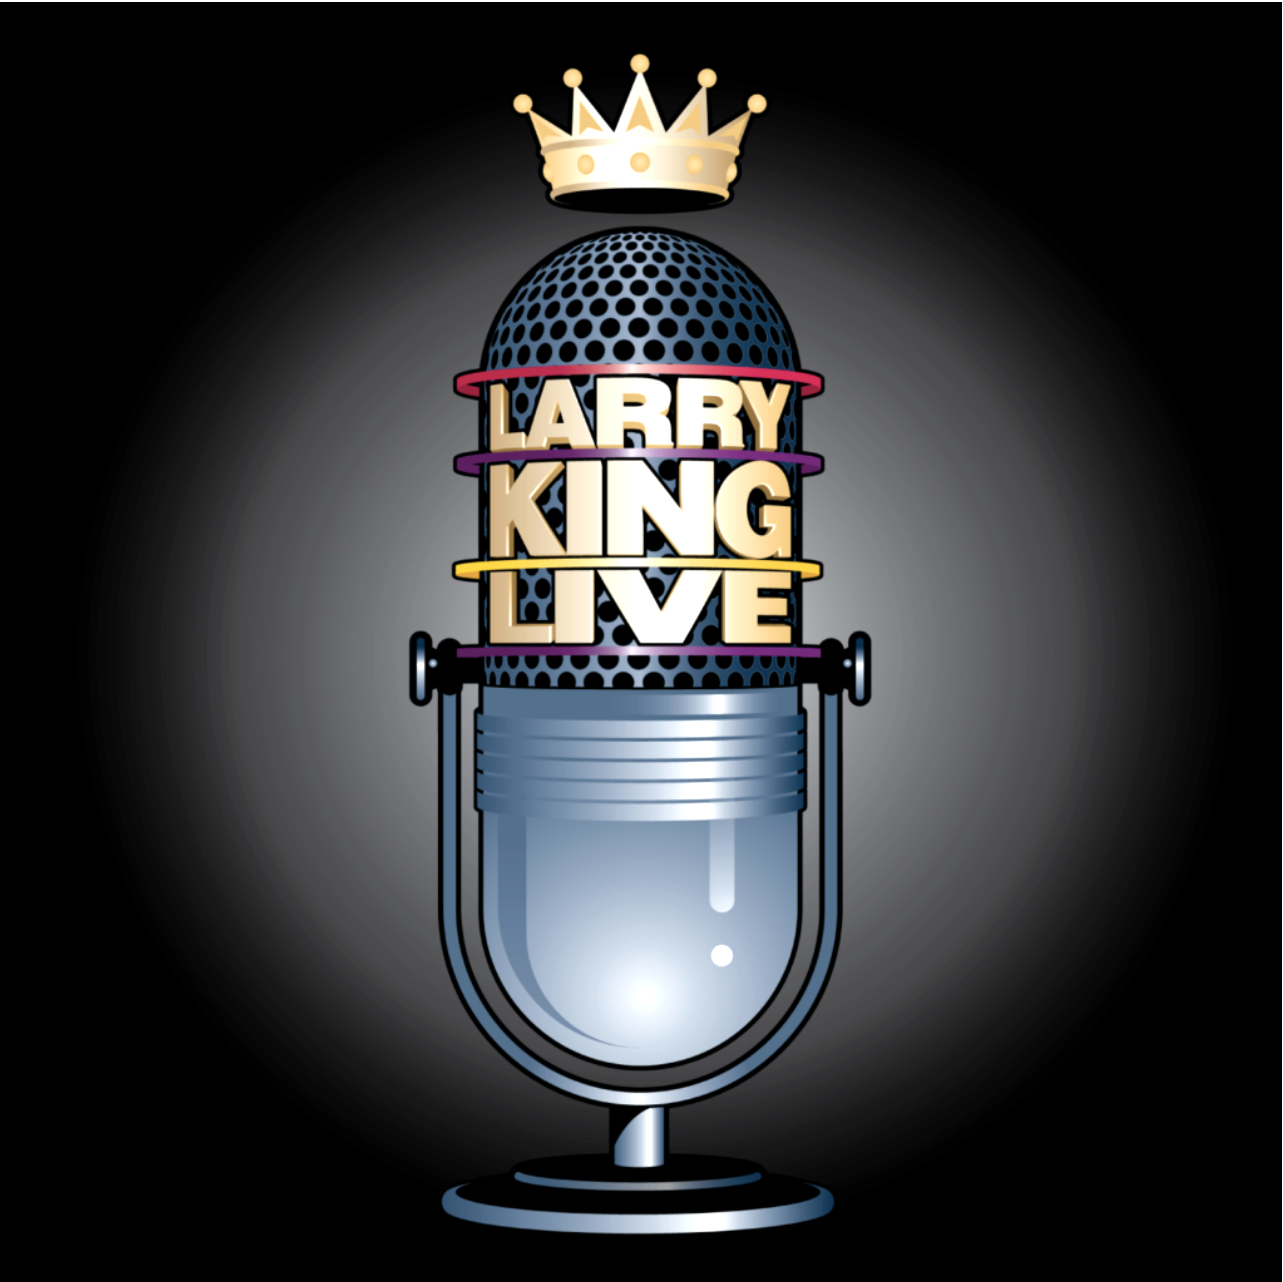 Larry King Live Logo